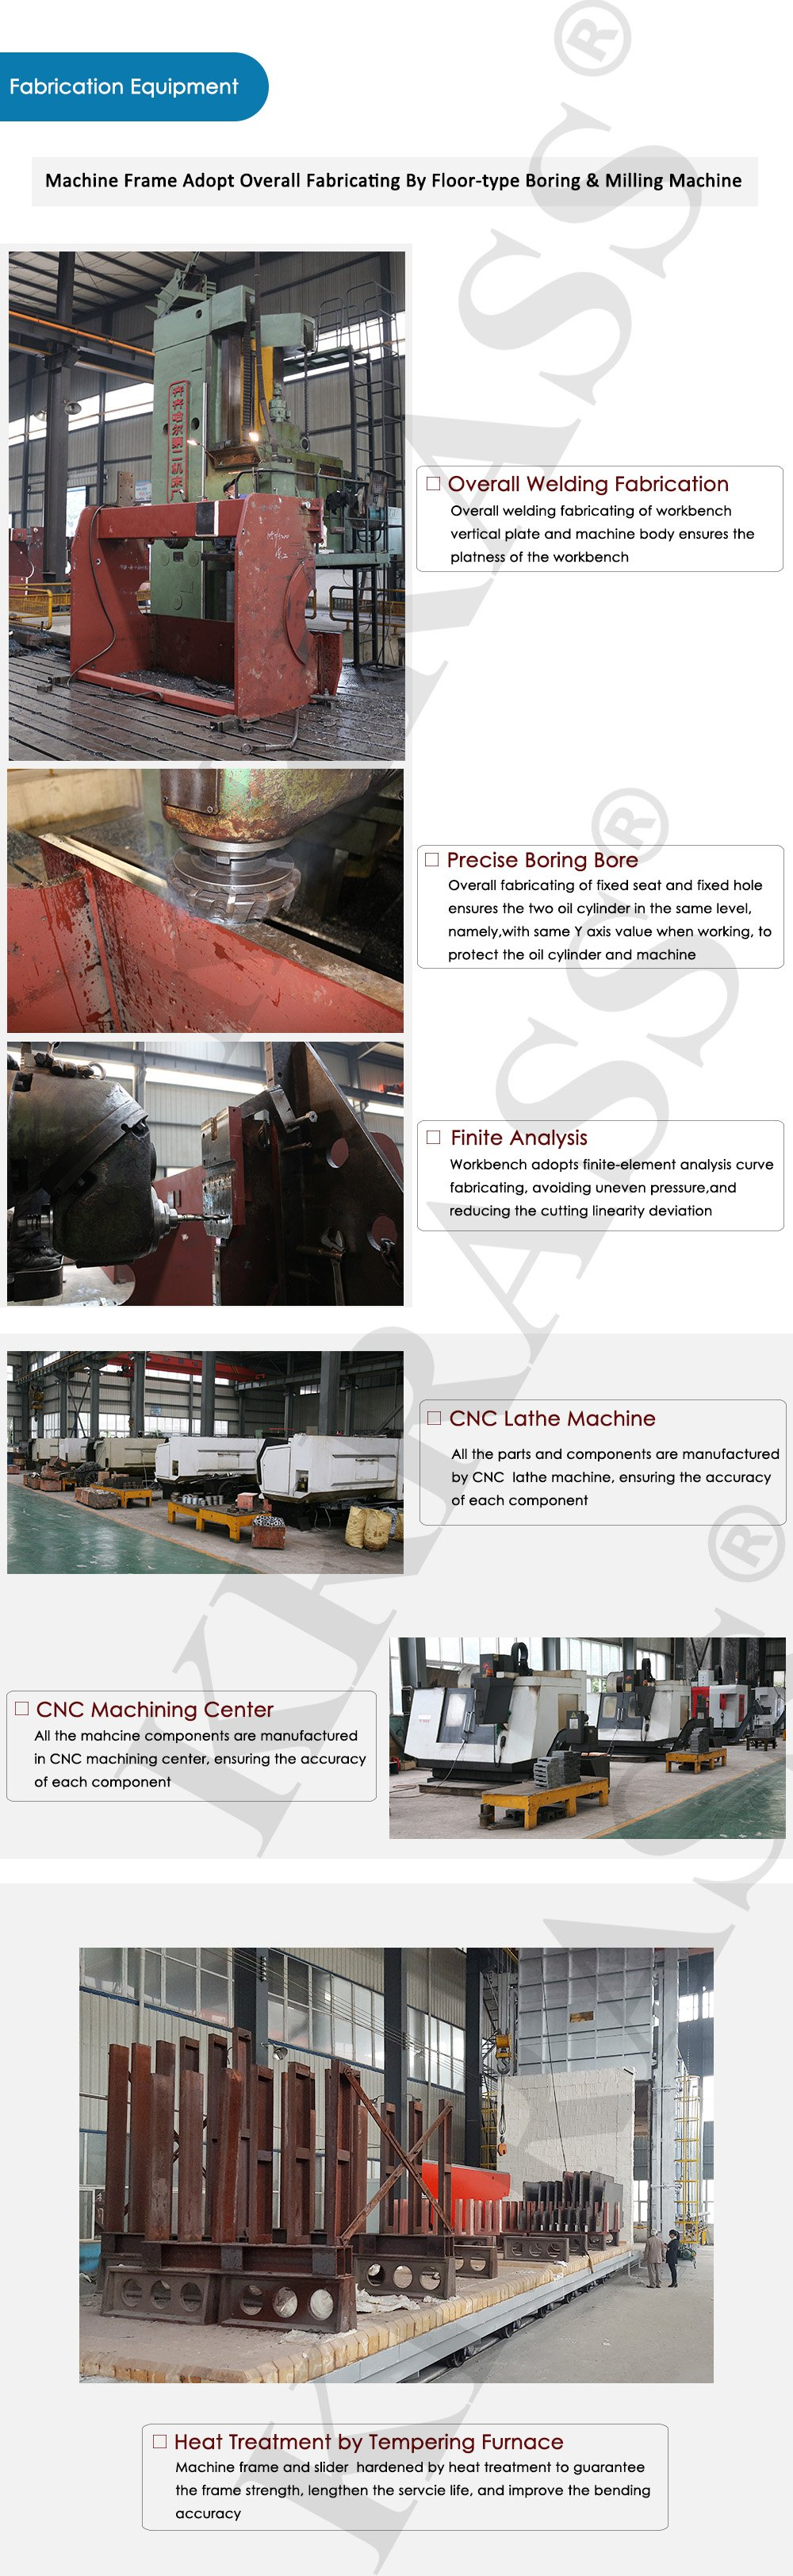 fabrication equipment